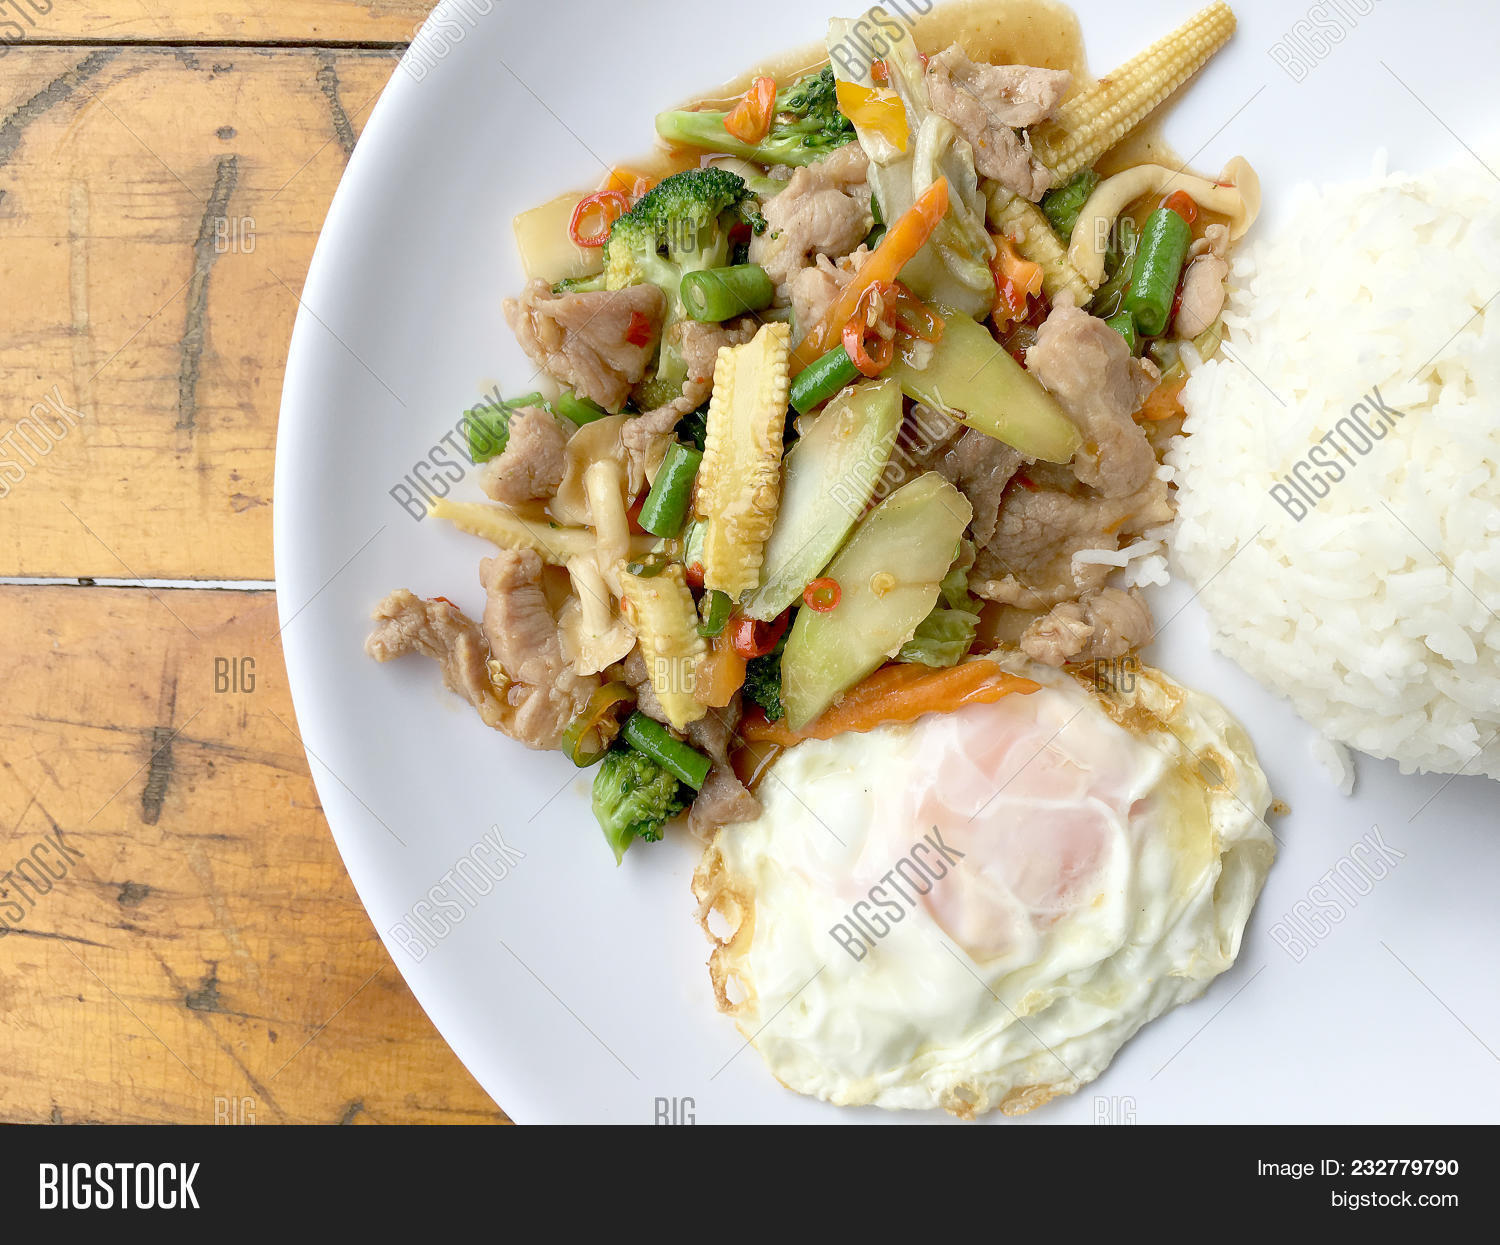 Wok Fried Chicken Stir Image & Photo (Free Trial) | Bigstock